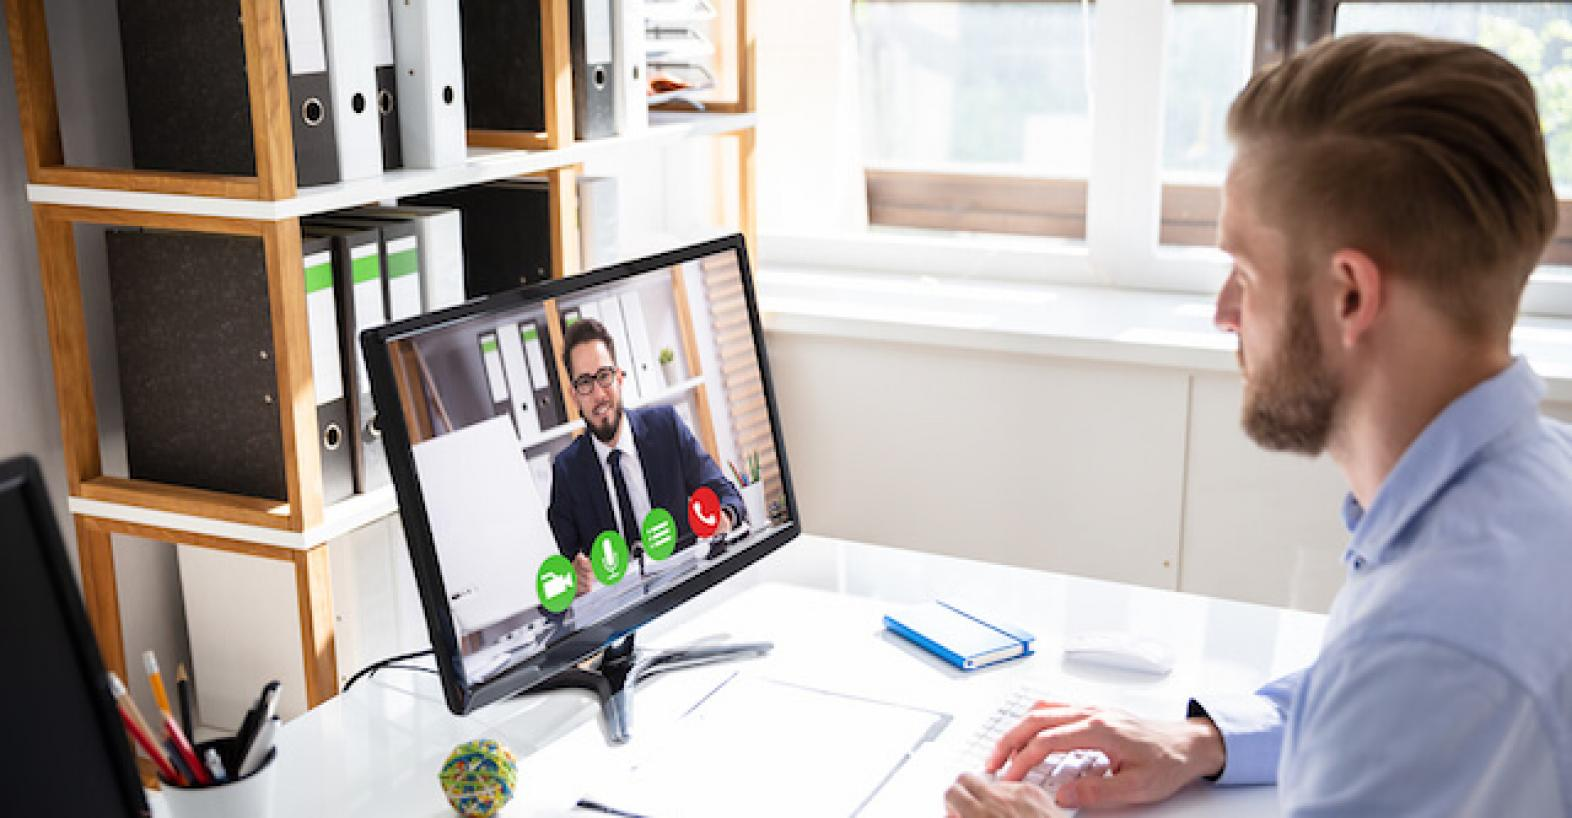 4 Tips To Improve Remote Working Productivity